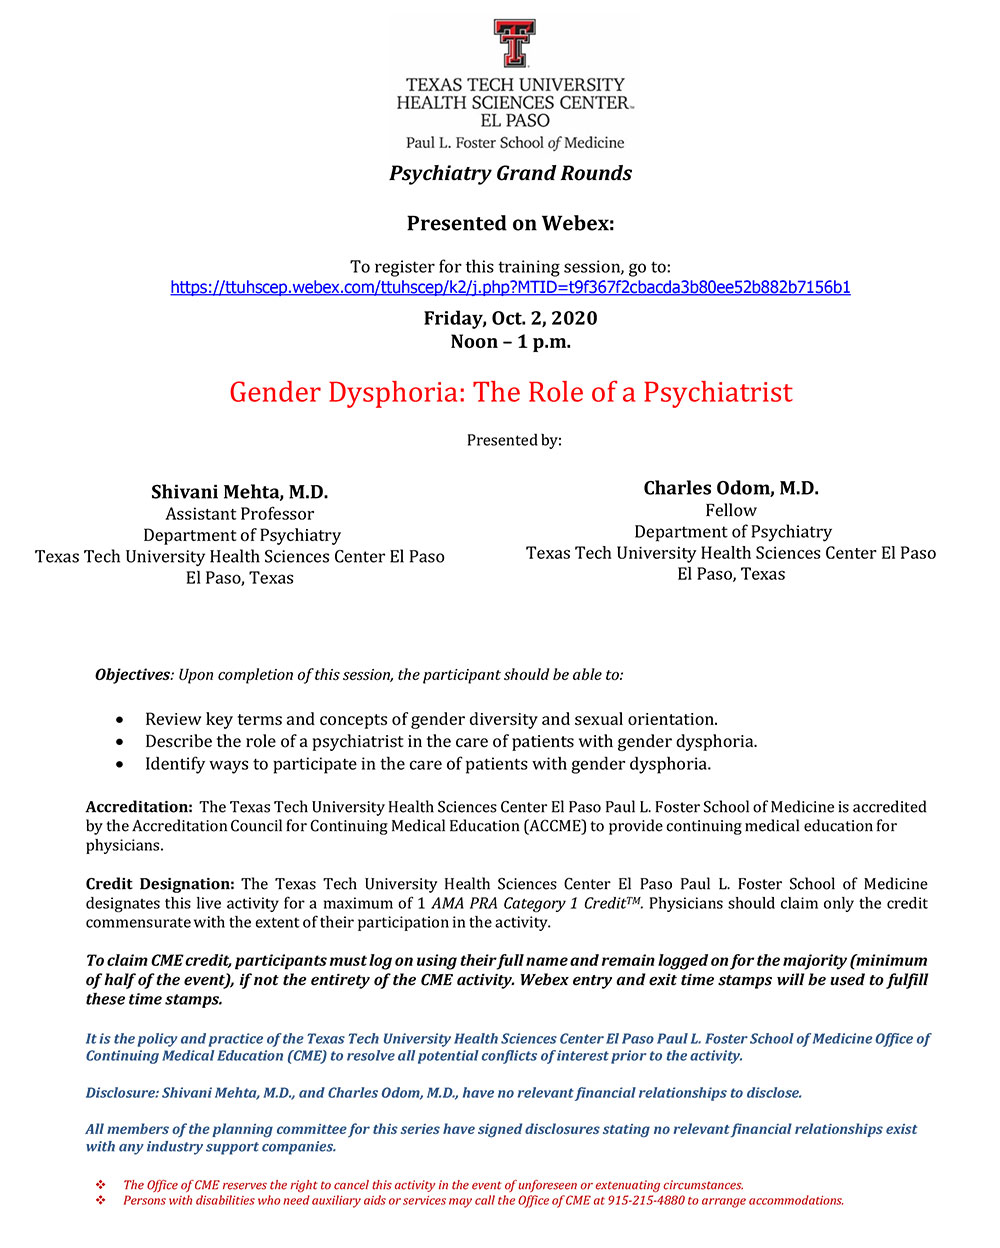 Psychiatry Grand Rounds - Oct. 2, 2020